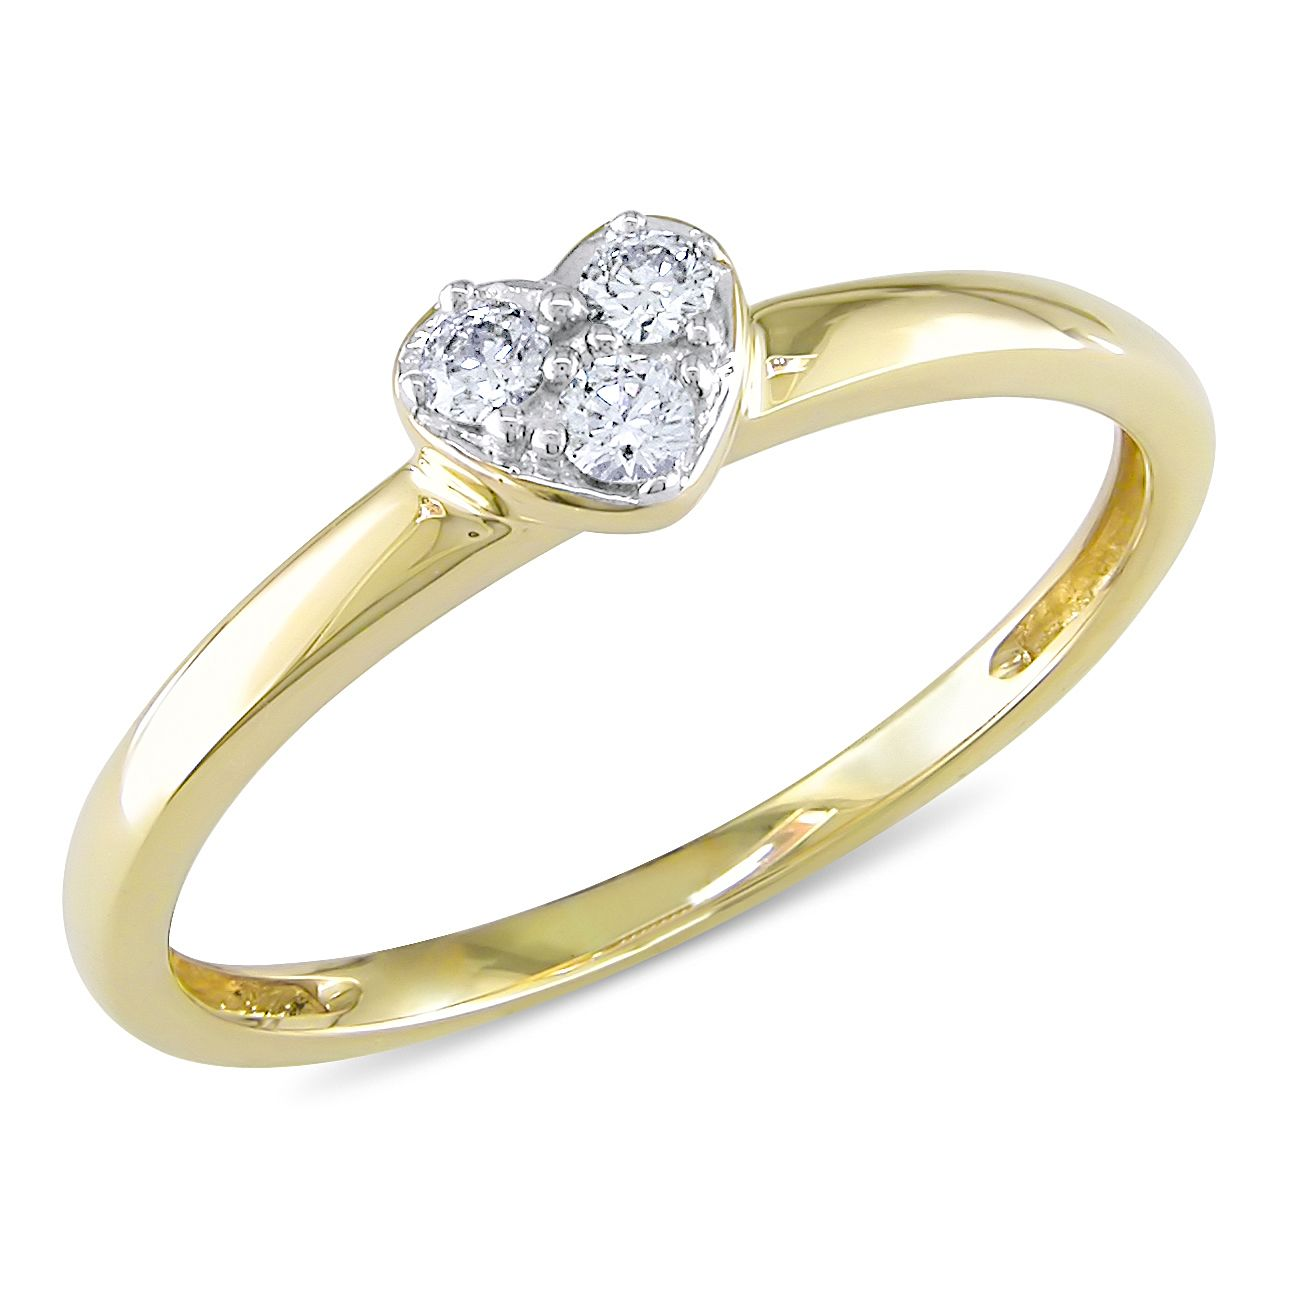 10ct Tdw Diamond Heart Promise Ring By Miadora